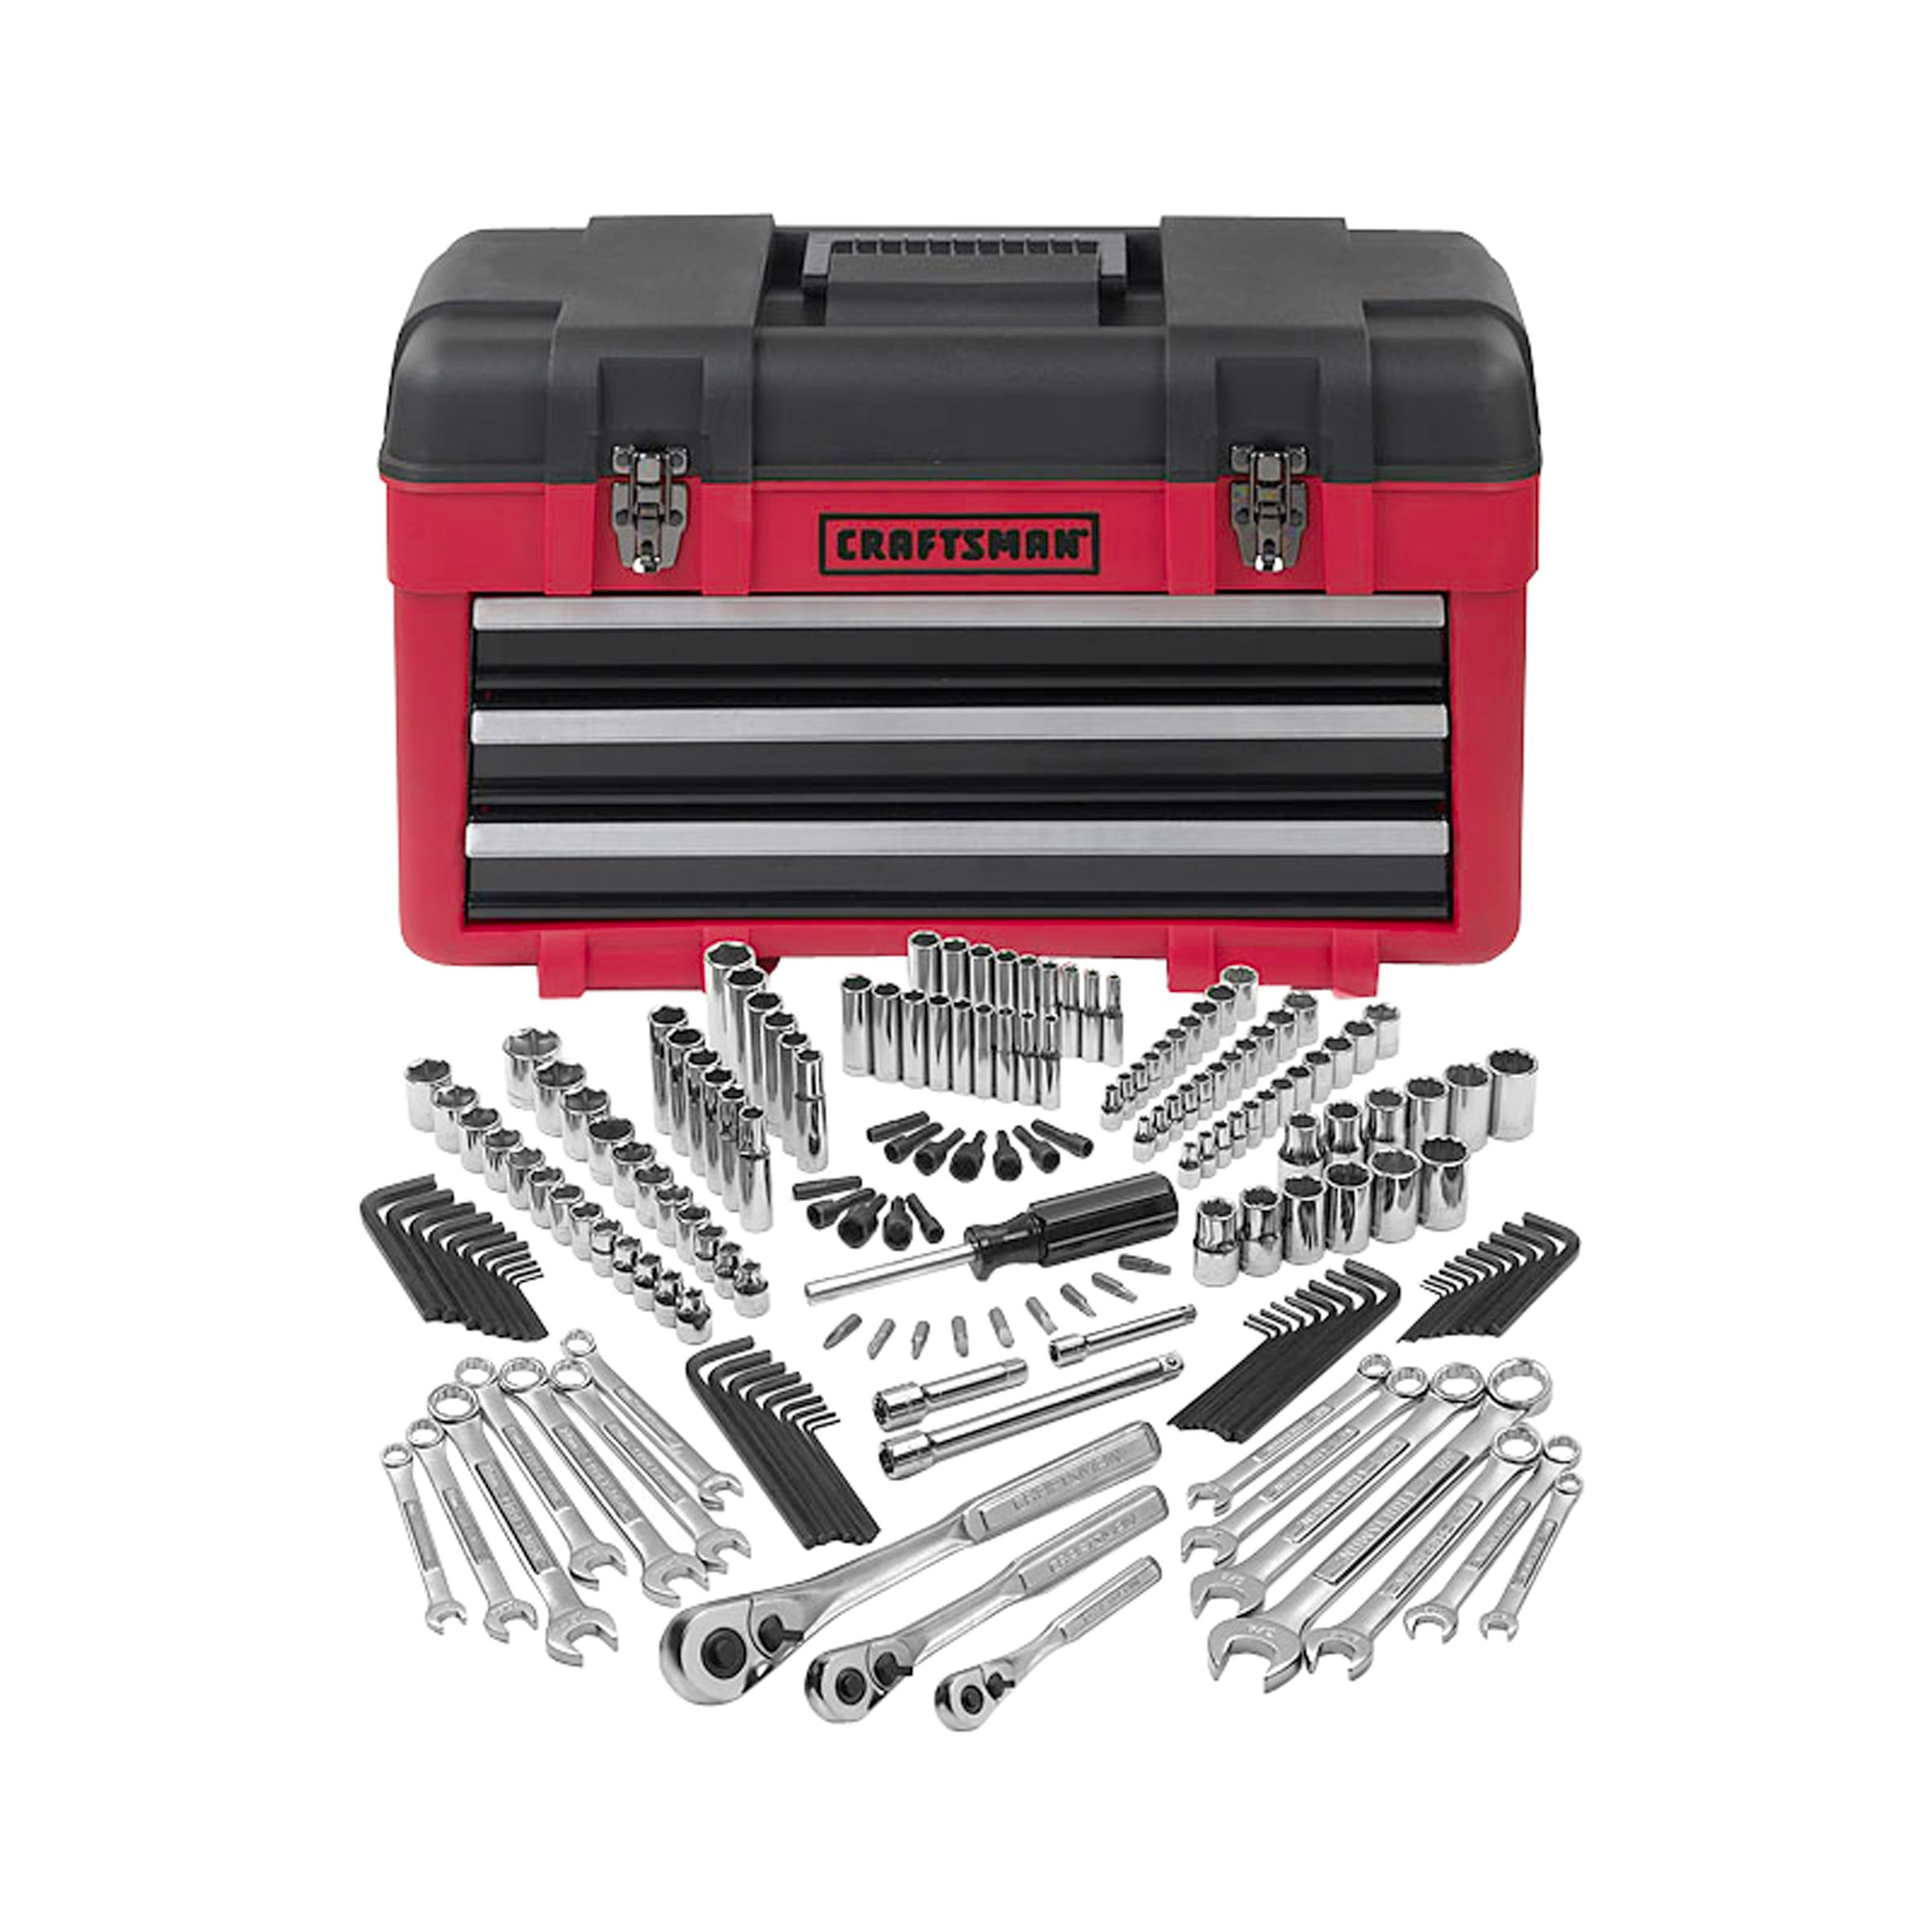 Craftsman-Vocational Kit - Pre-packaged Sets